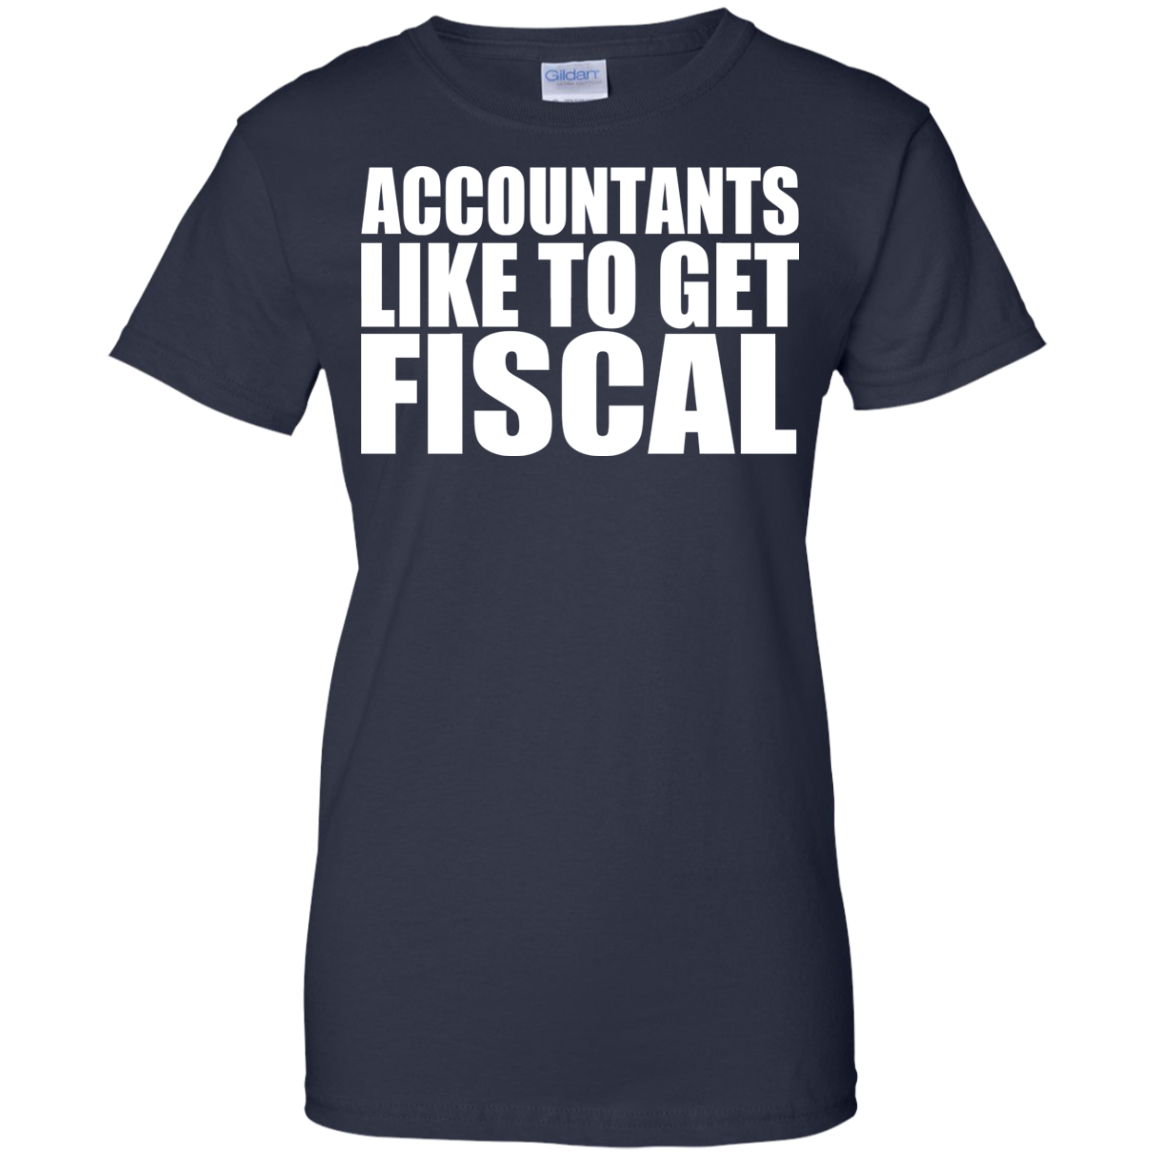 Accountants Like To Get Fiscal Ladies Tees